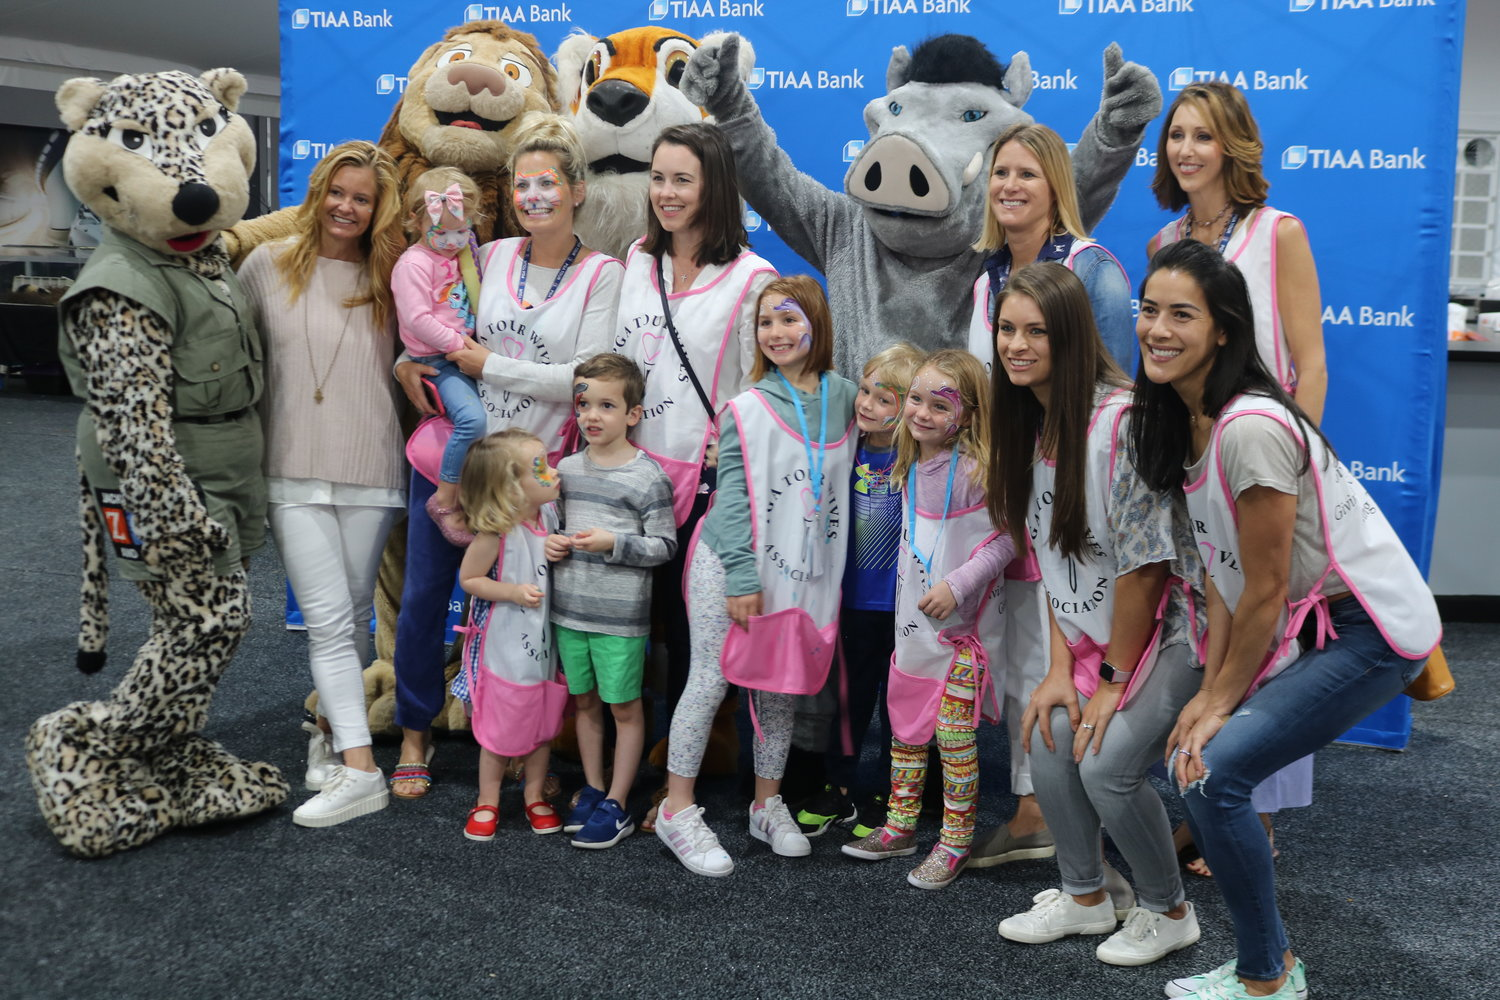 Chairperson Tabitha Furyk (left) and other PGA TOUR wives pose with Jacksonville Zoo characters.